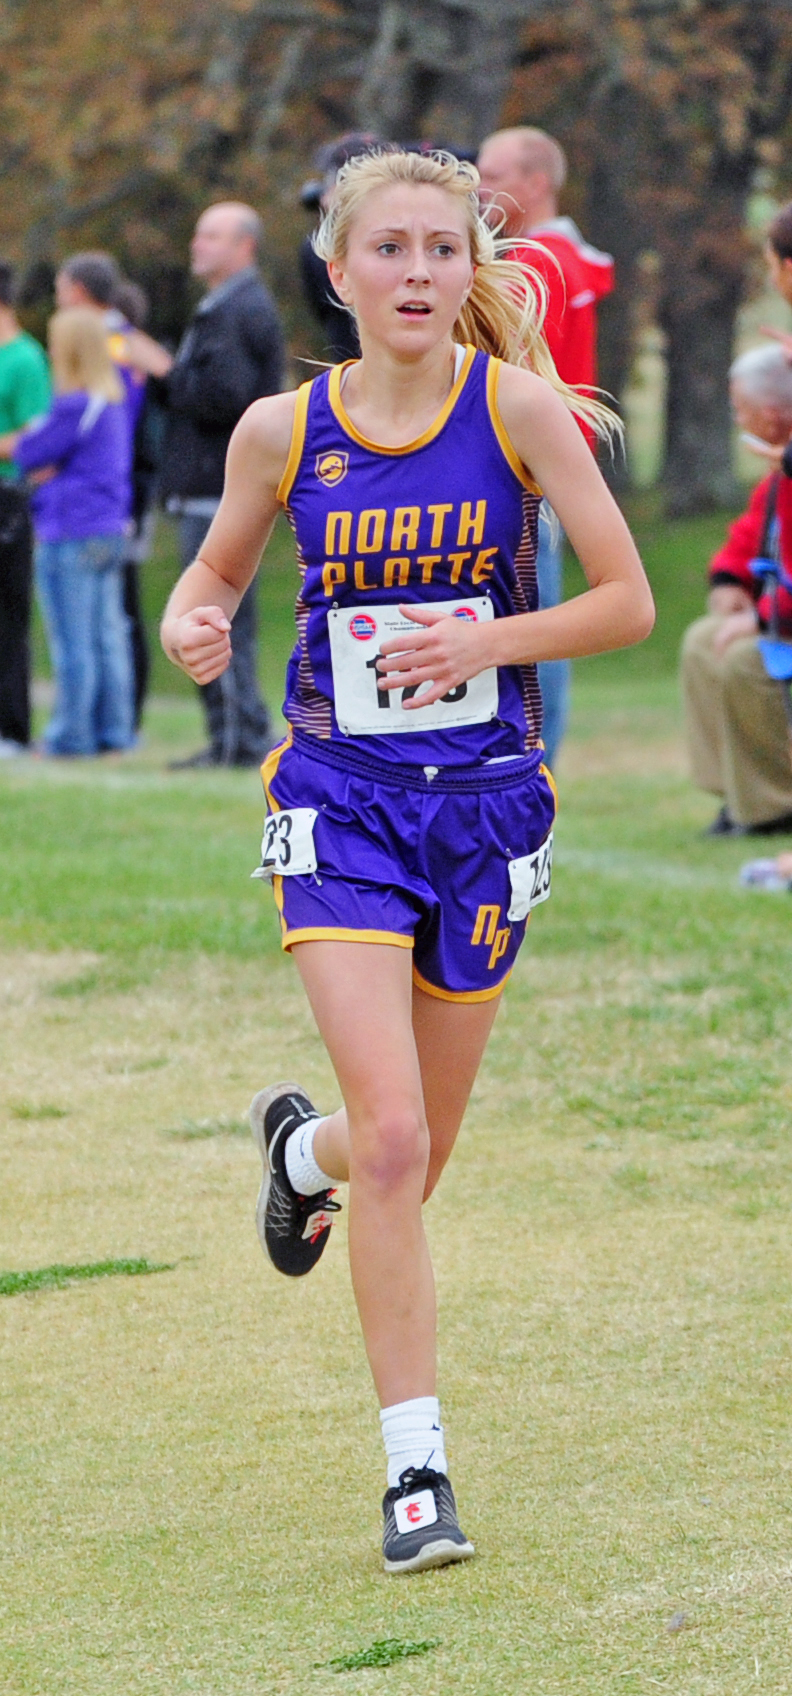 NICK INGRAM/Citizen photo North Platte senior McKenna Fulton competes in the Class 2 Missouri State Cross Country Championships on Saturday, Nov. 4 at Oak Hills Golf Center in Jefferson City, Mo.